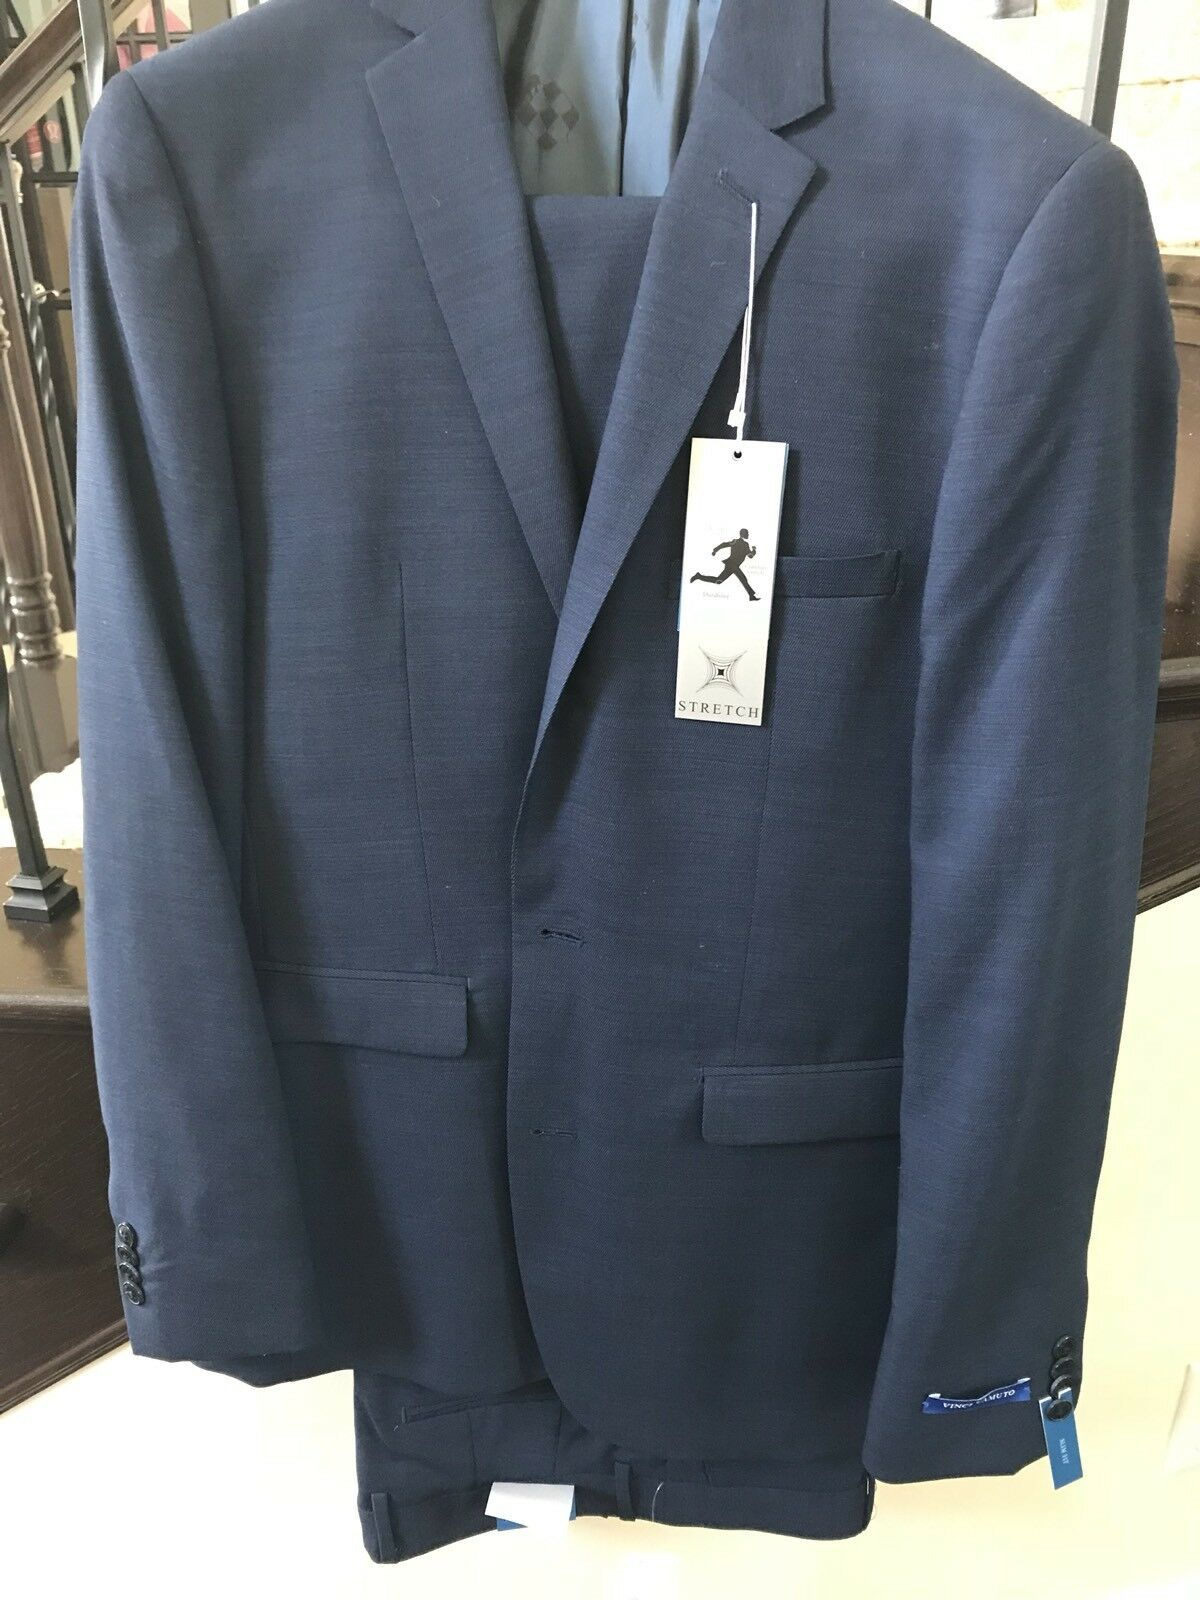 Vince Camuto Suit 40L 33w Slim Fit Nwt Price ROTuction Great deal